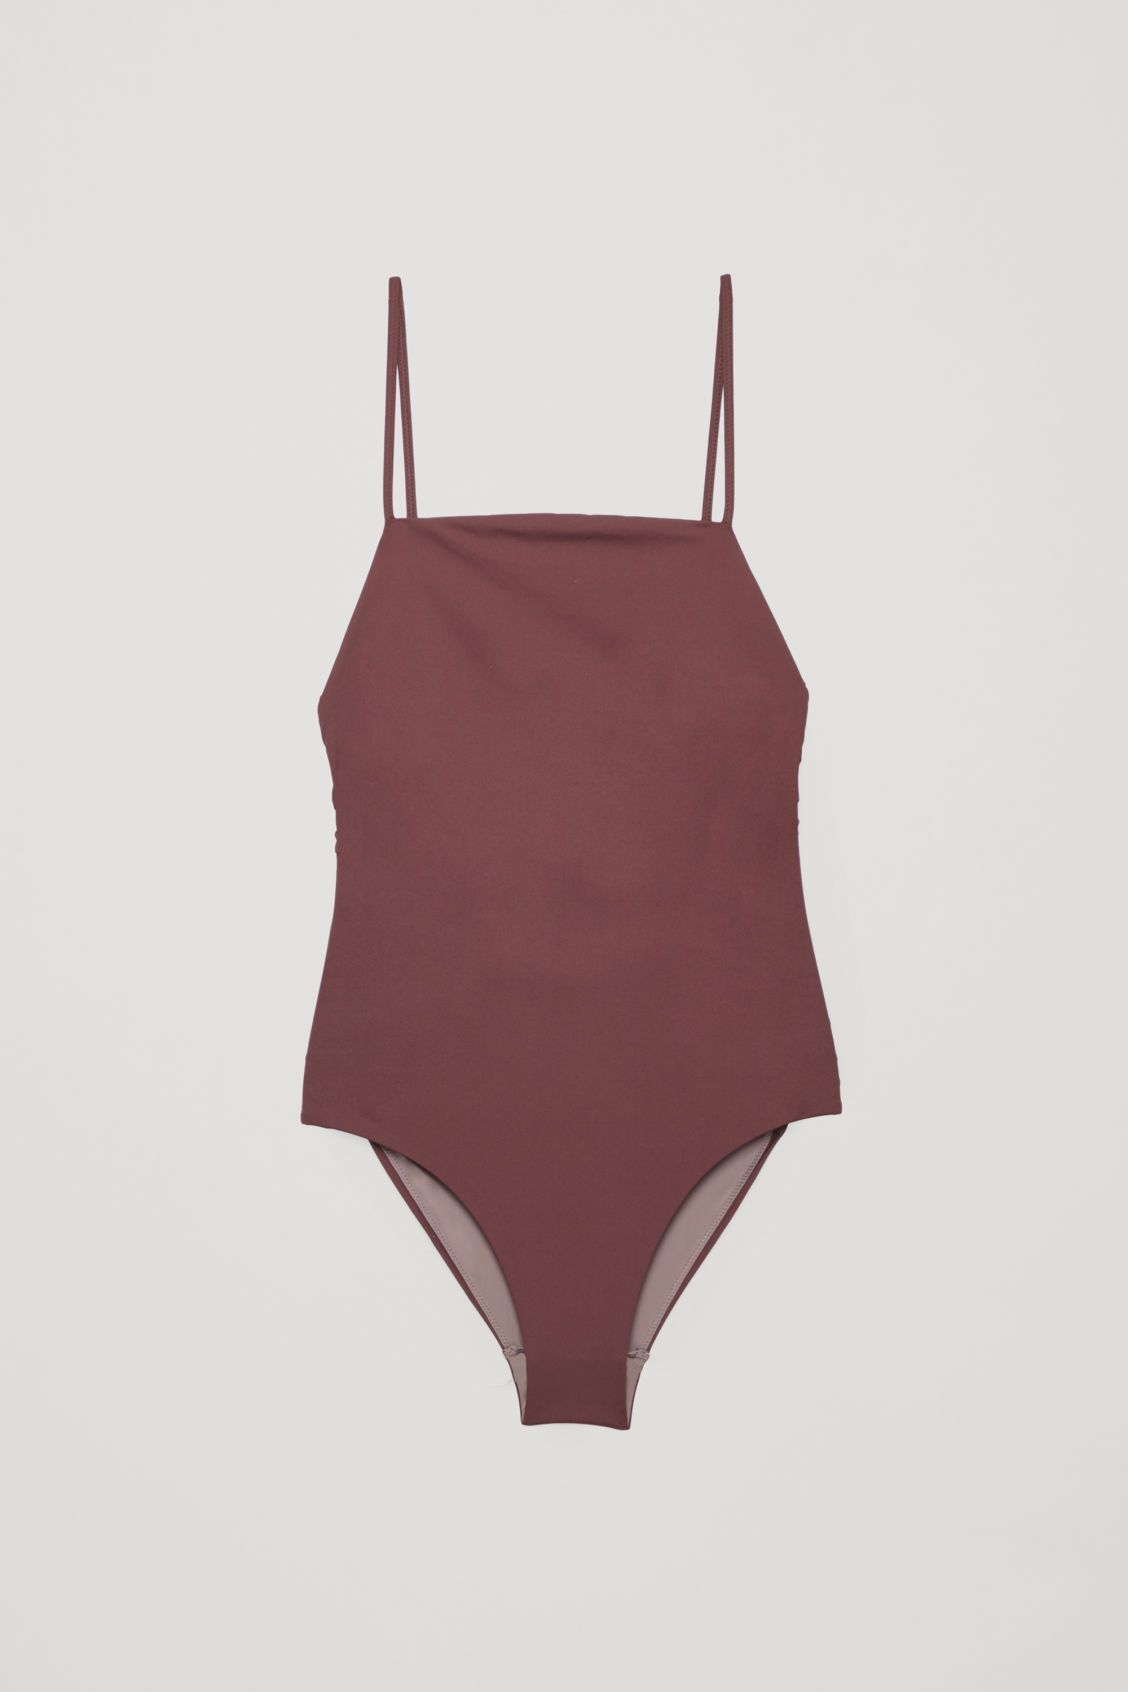 d7f0aa03f86 CROSSOVER SQUARE-NECK SWIMSUIT - Burgundy - Swimwear - COS | Wants ...